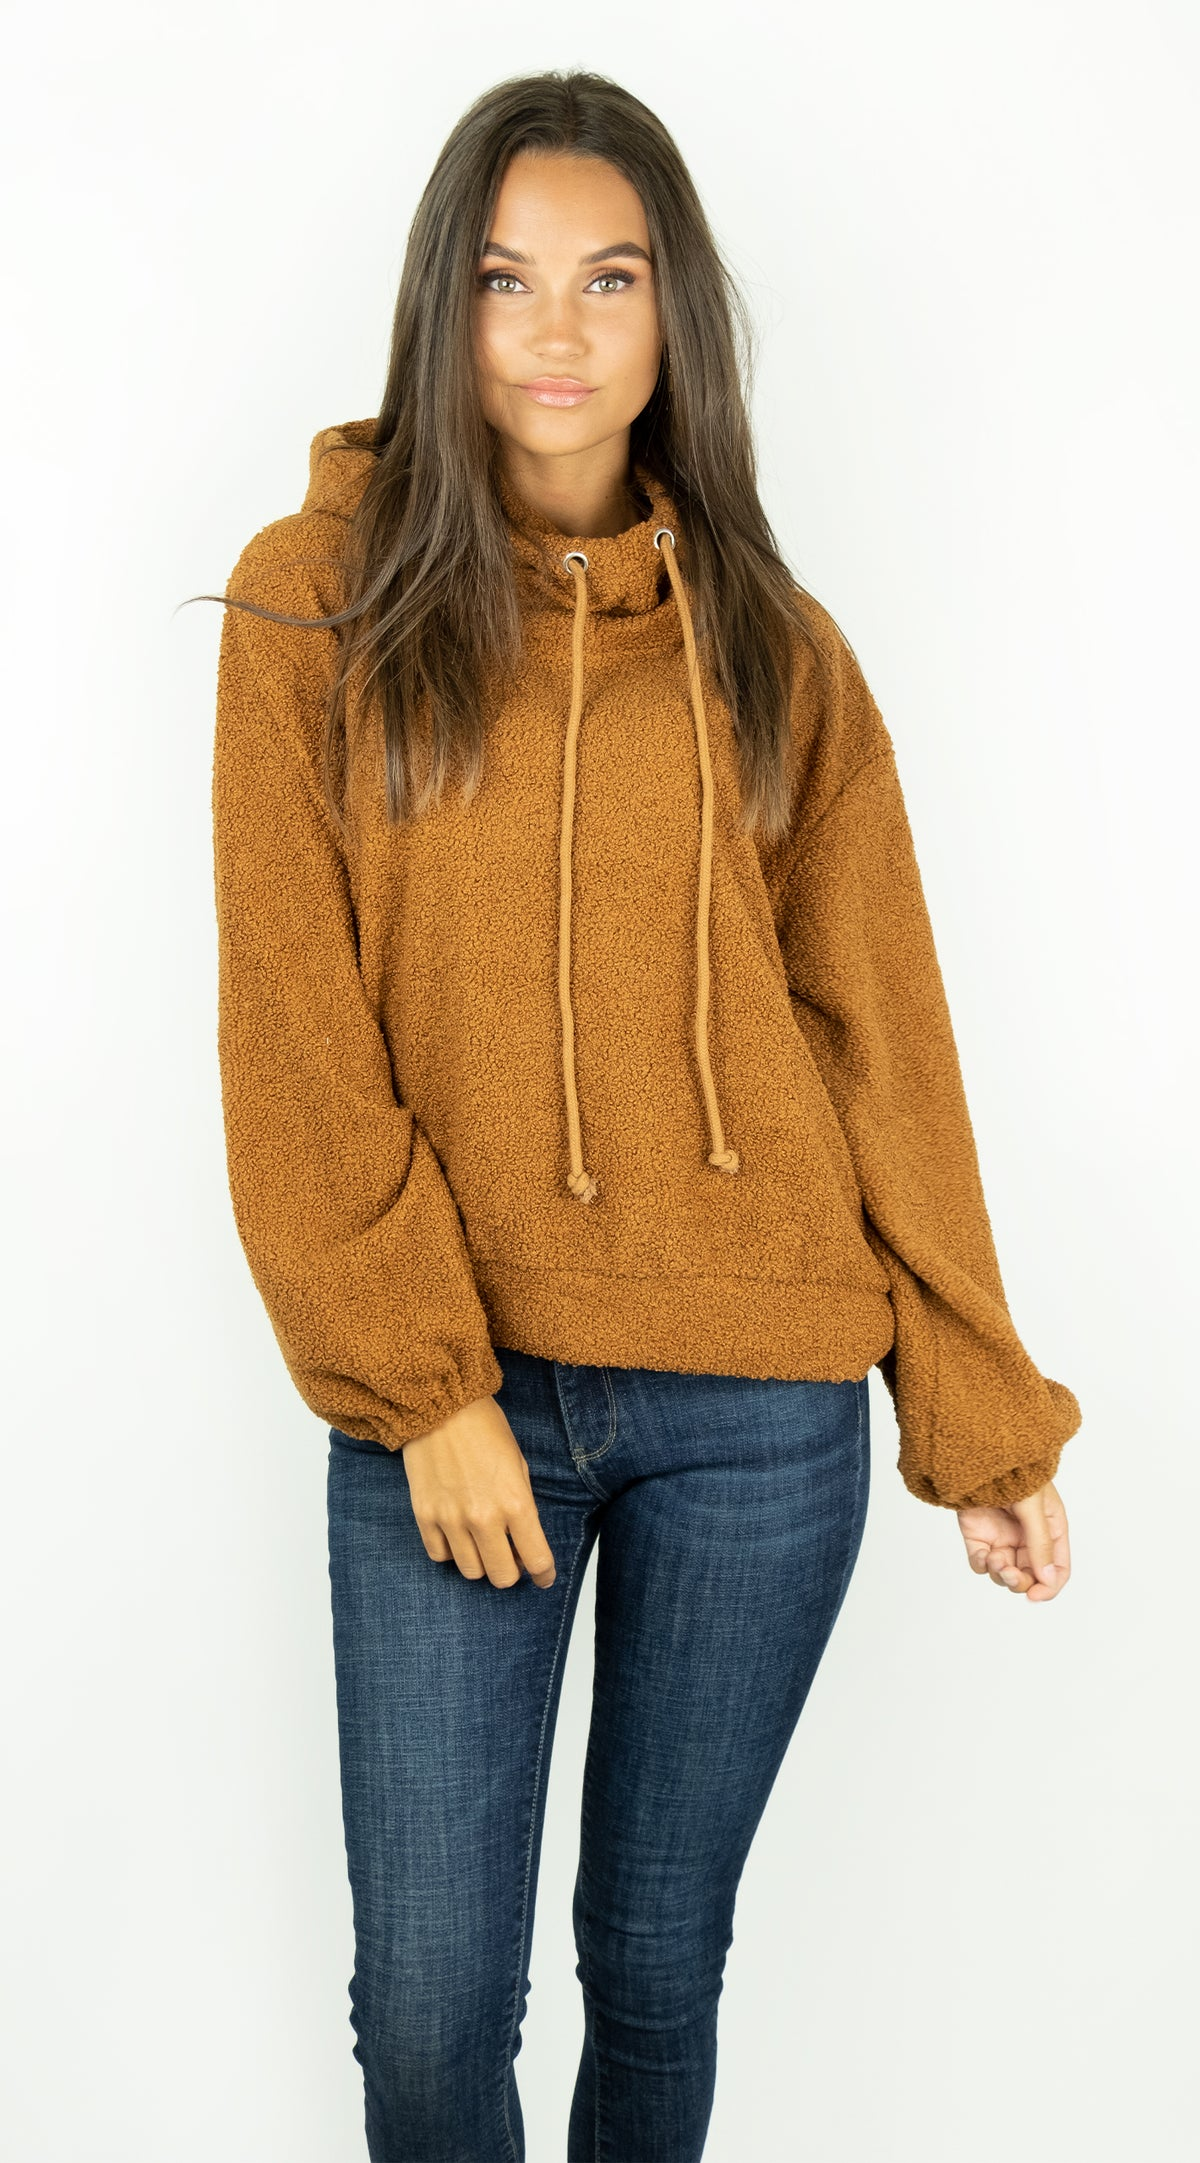 BUYLAU | Teddy Sweater Brown